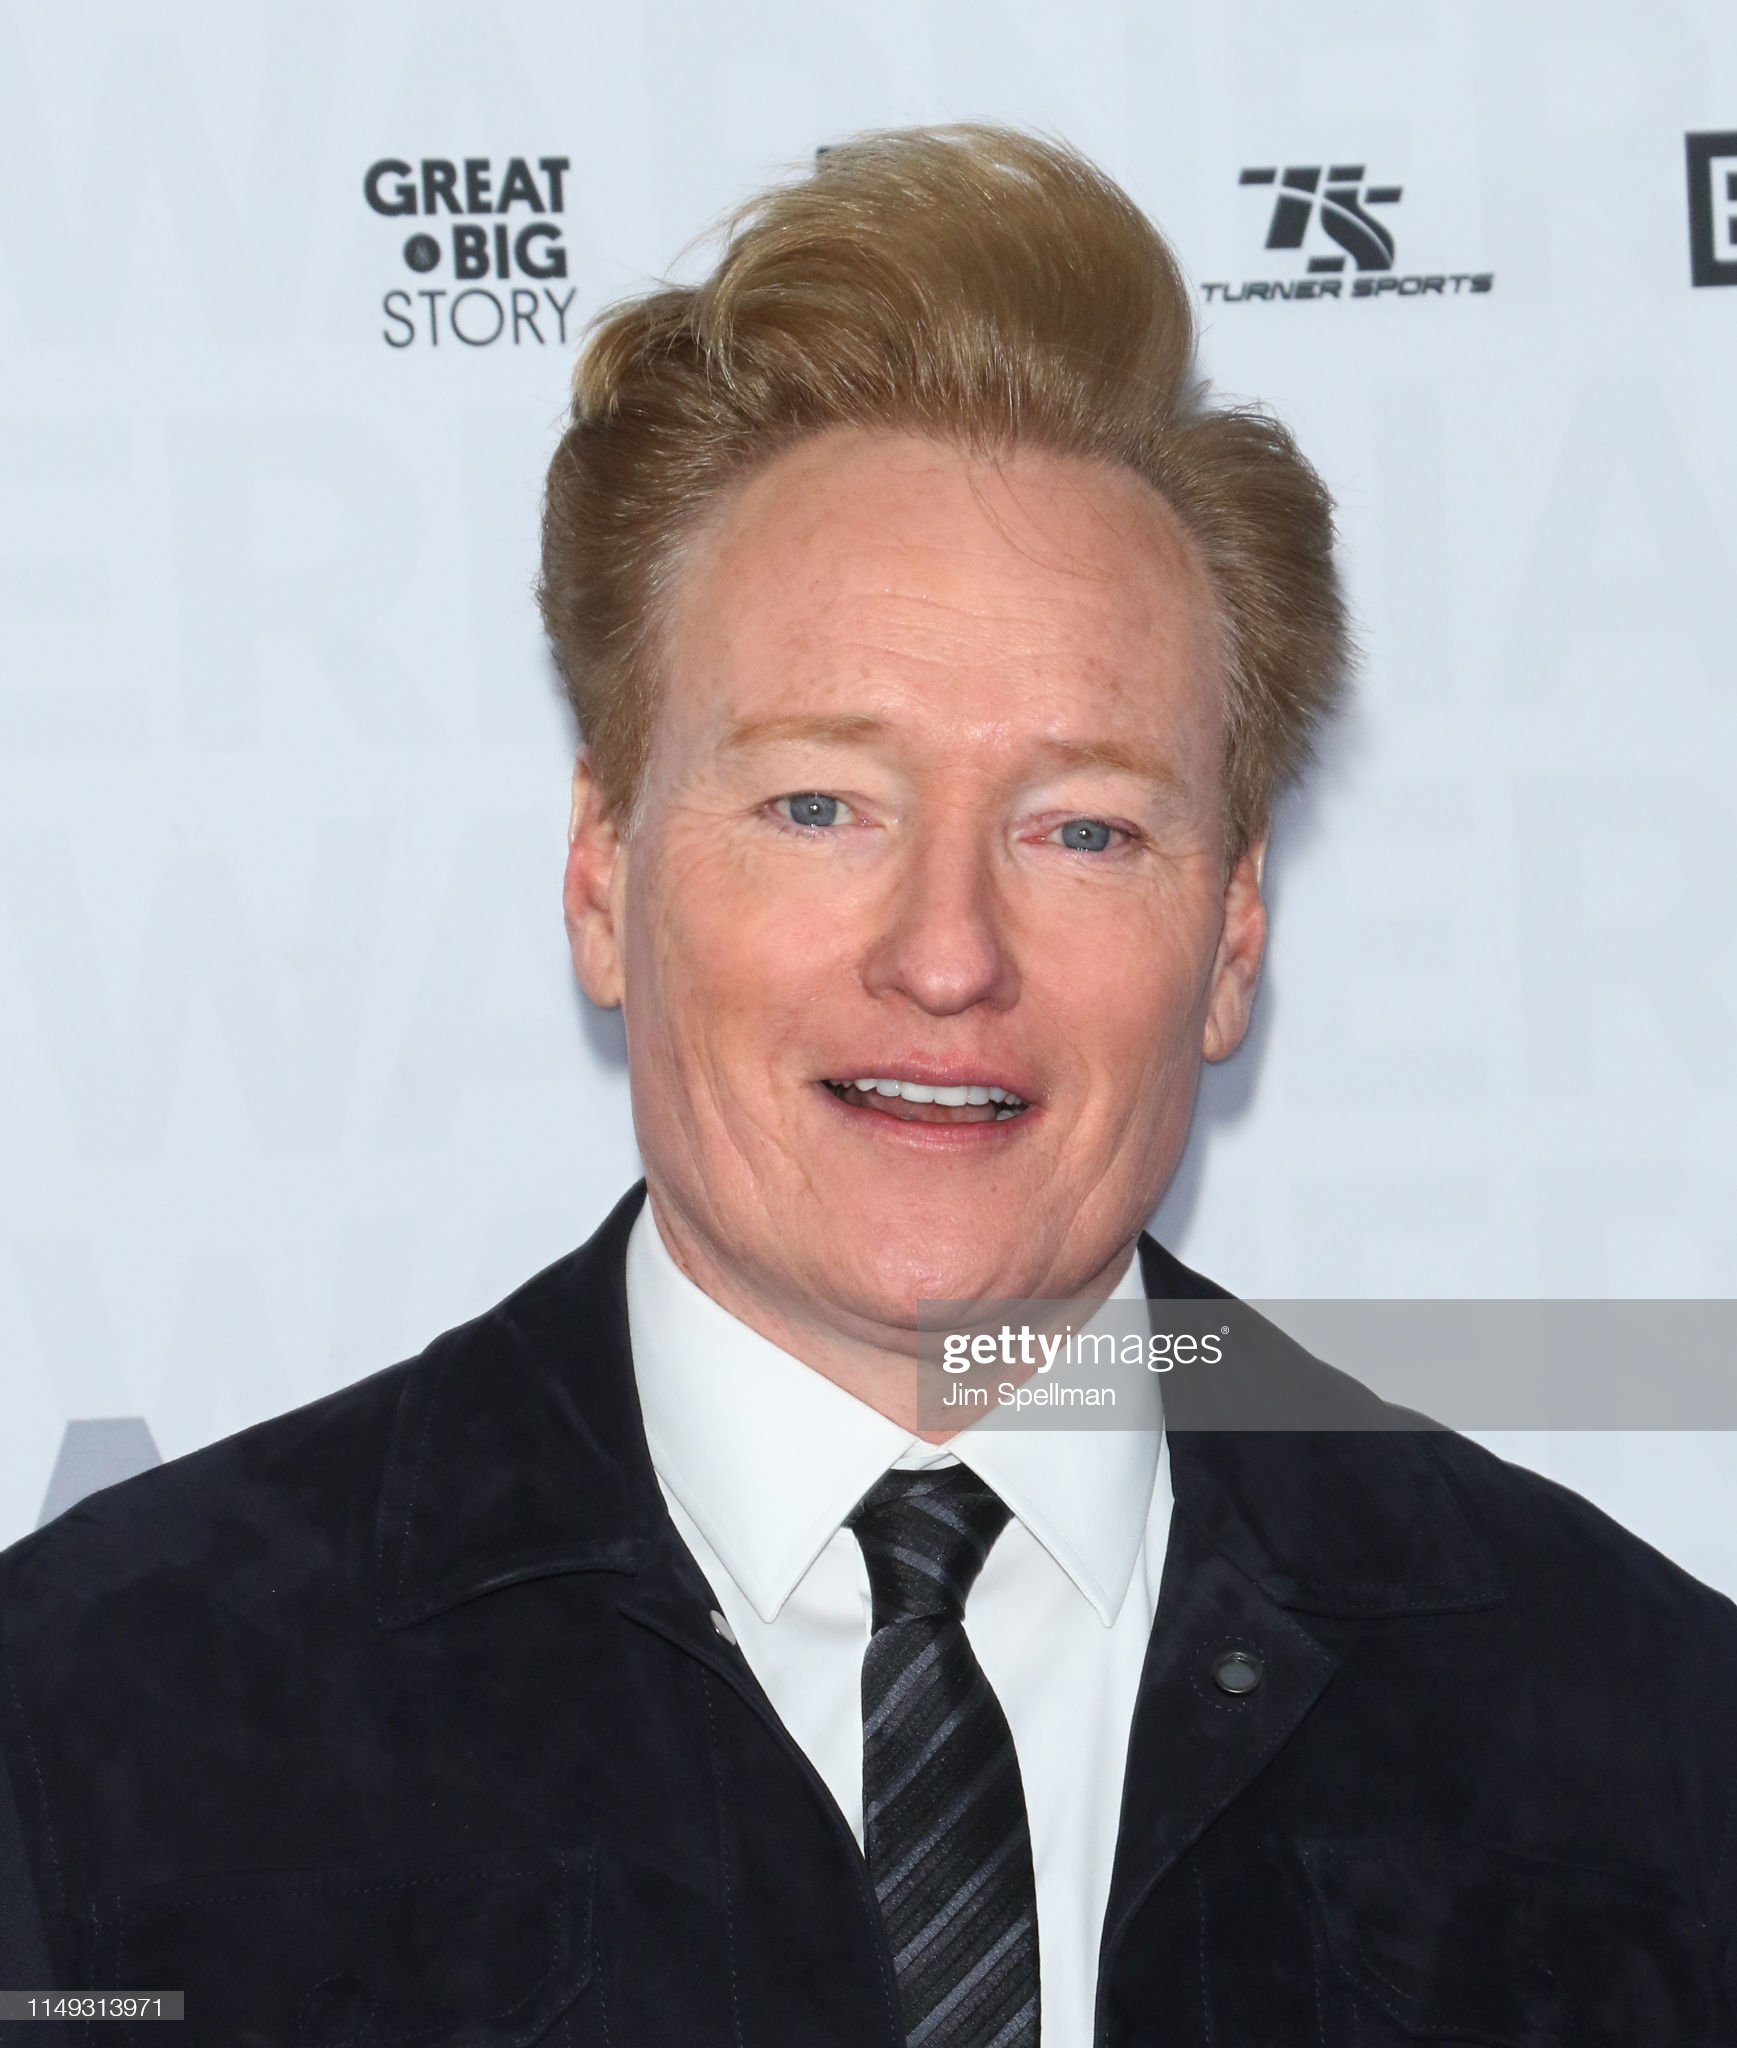 ¿Cuánto mide Conan O'Brien? - Altura - Real height Host-conan-obrien-attends-the-warnermedia-2019-upfront-at-one-penn-picture-id1149313971?s=2048x2048